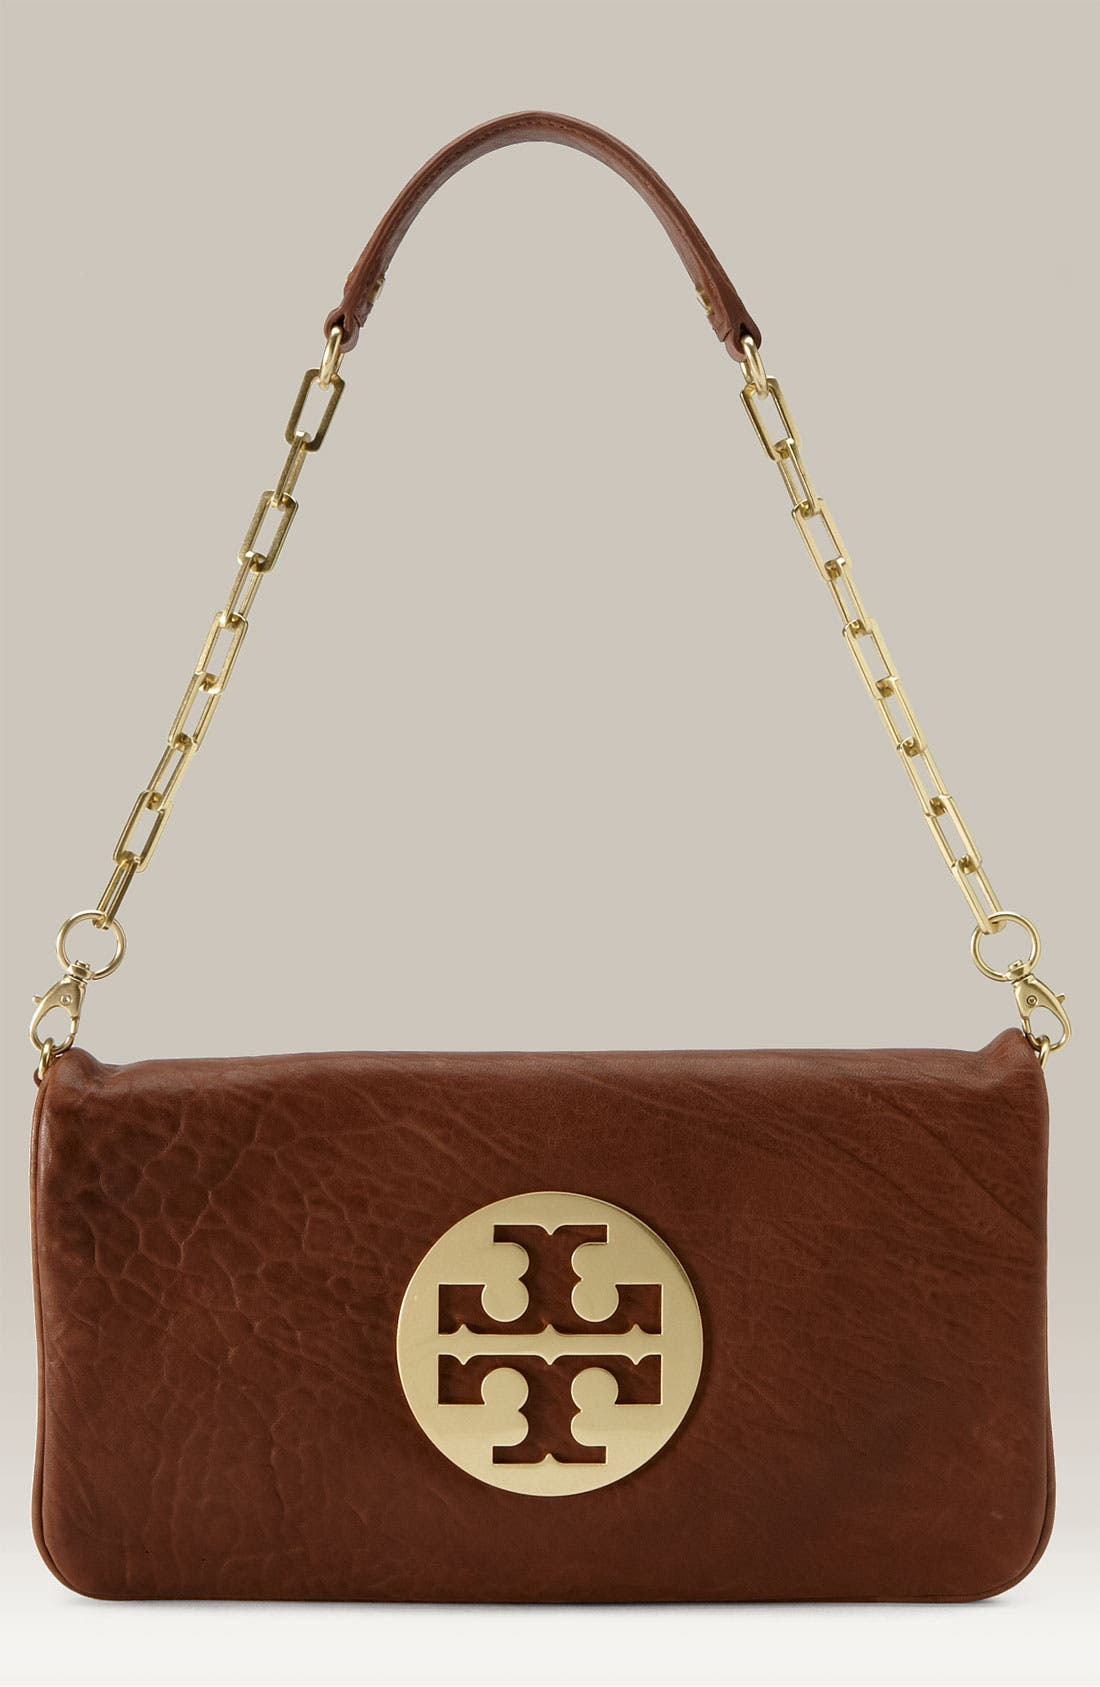 Alternate Image 1 Selected - Tory Burch 'Reva' Pebbled Leather Clutch